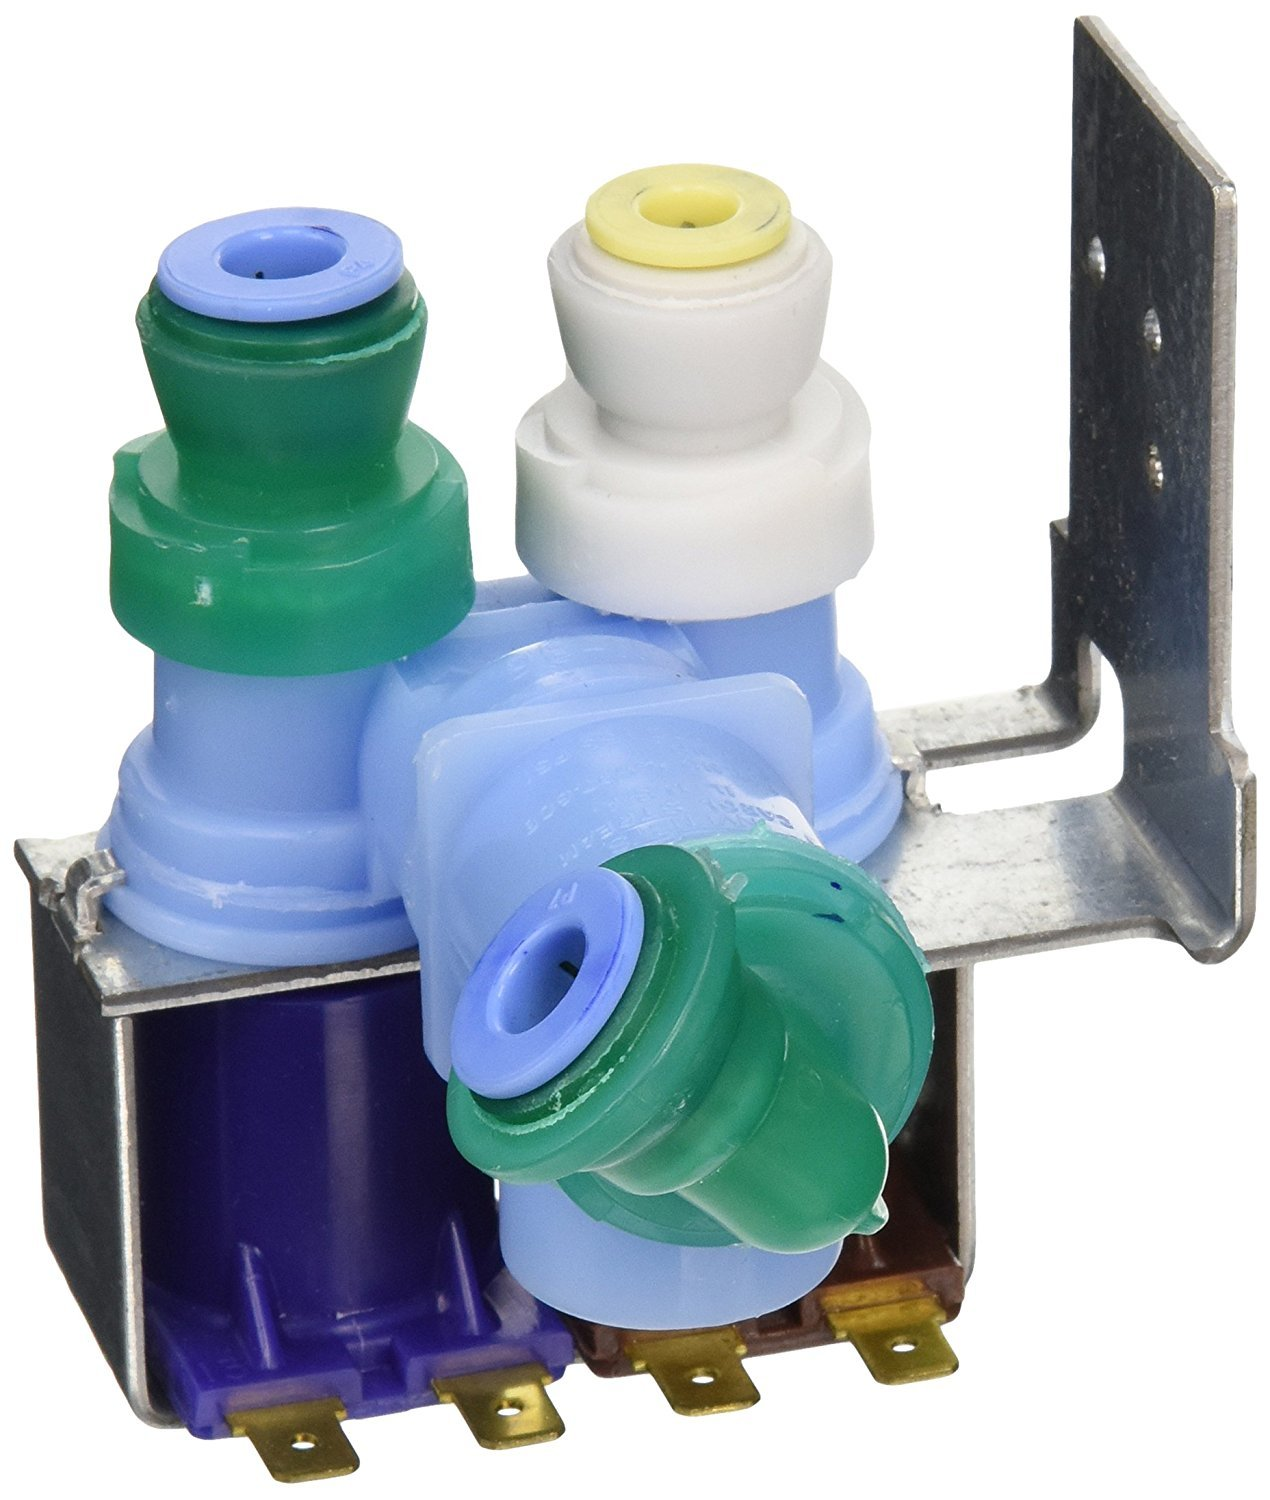 Maytag PSD2453GRW (PPSD2453GW0) Water Valve Kit Replacement